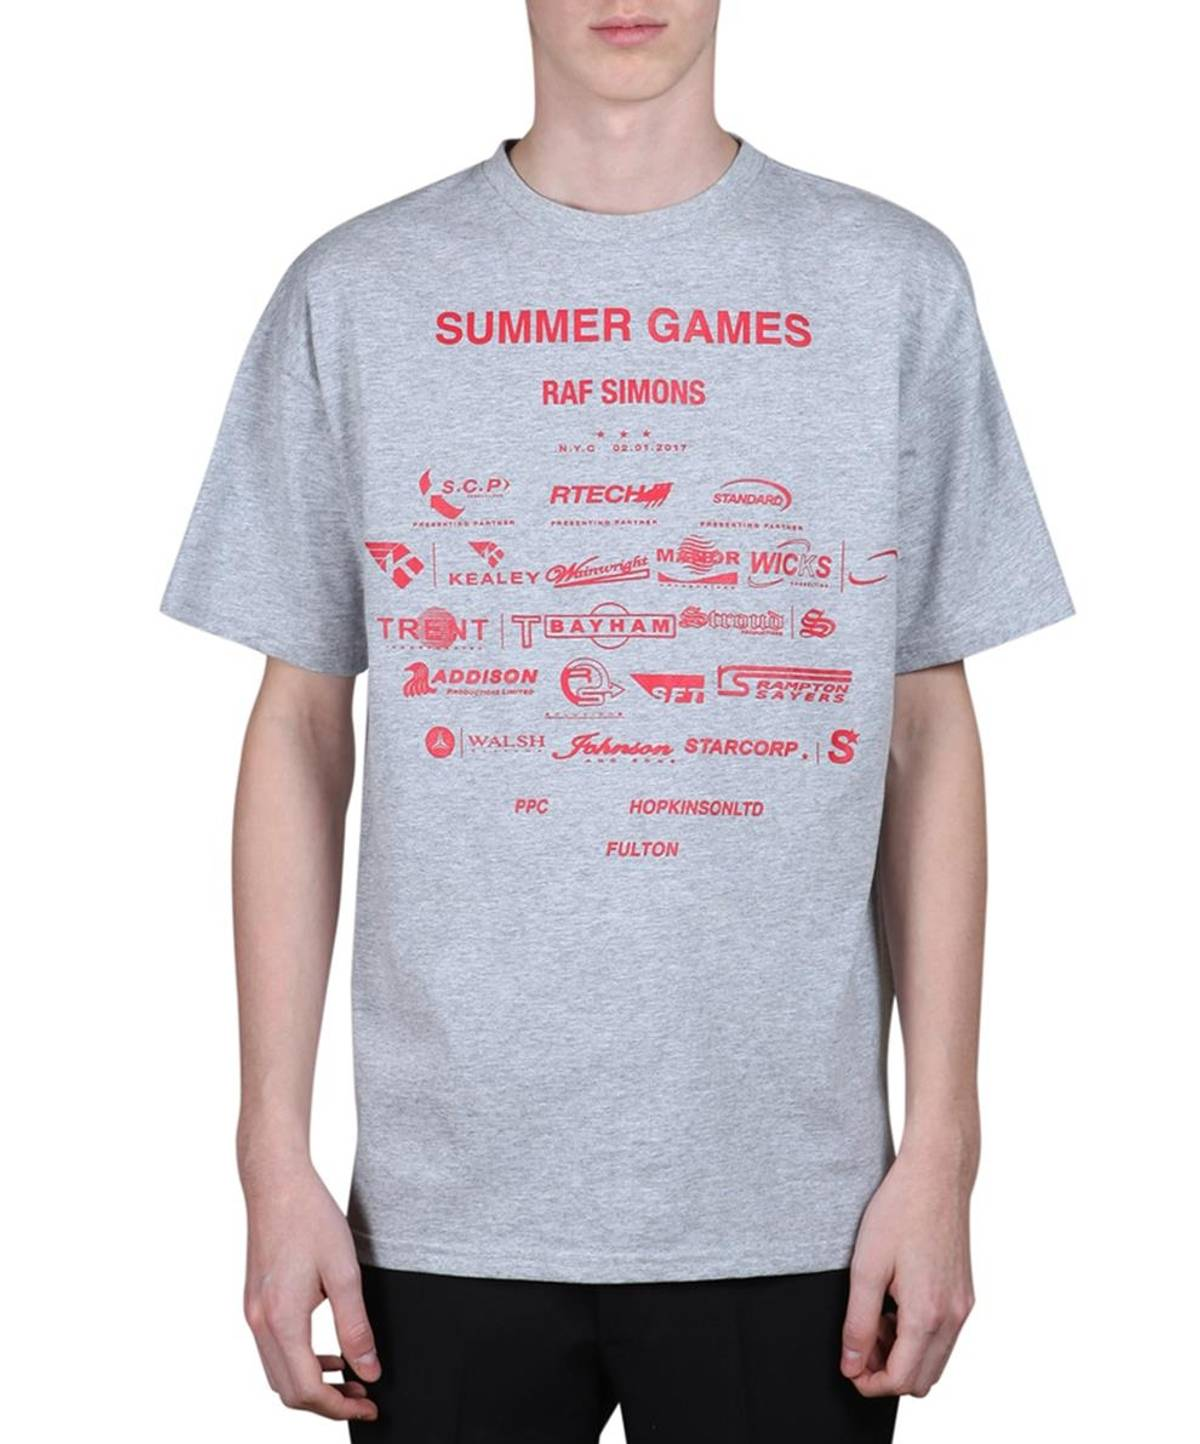 76daf89b70e Raf Simons Summer Games cotton t-shirt (easy fit) Size l - Short Sleeve T- Shirts for Sale - Grailed